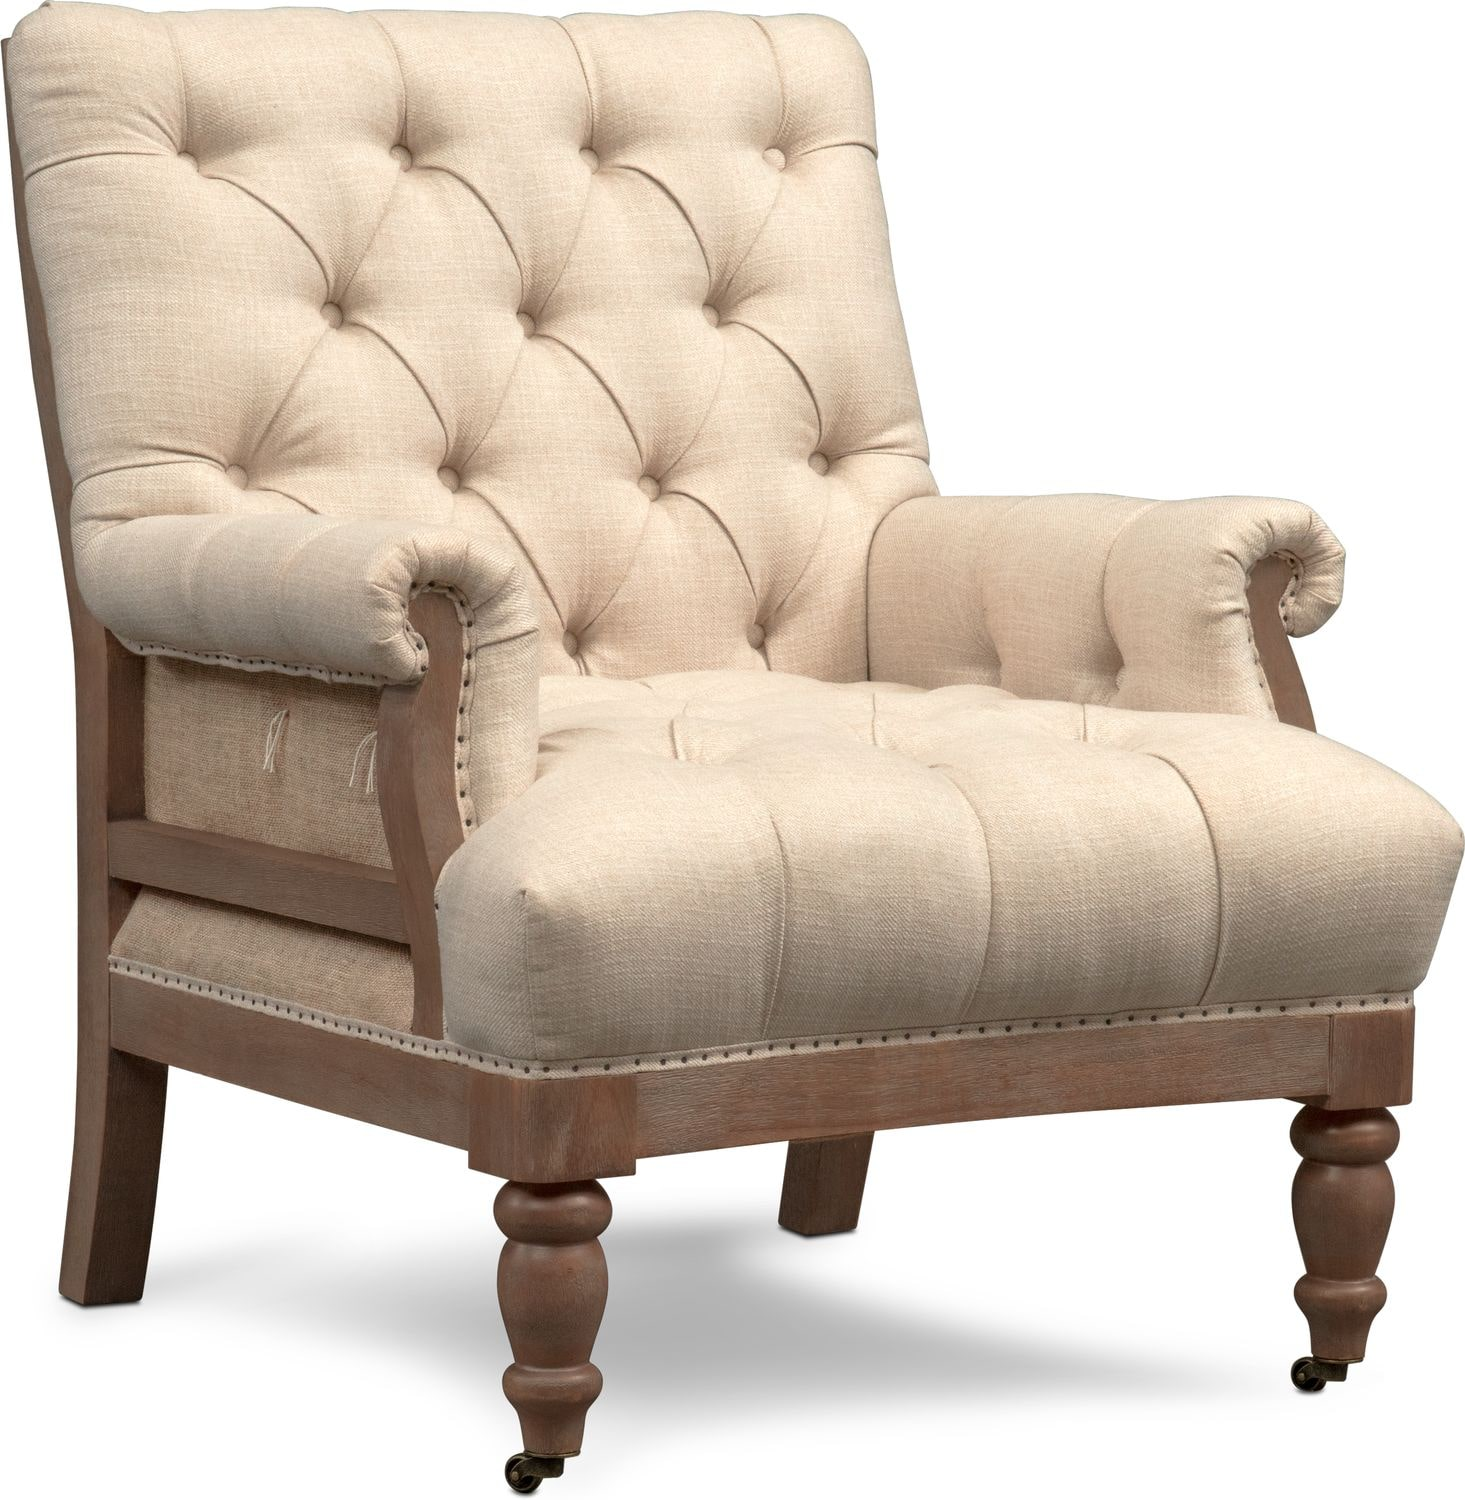 mesmerizing living room accent chair | Bridget Accent Chair | Value City Furniture and Mattresses